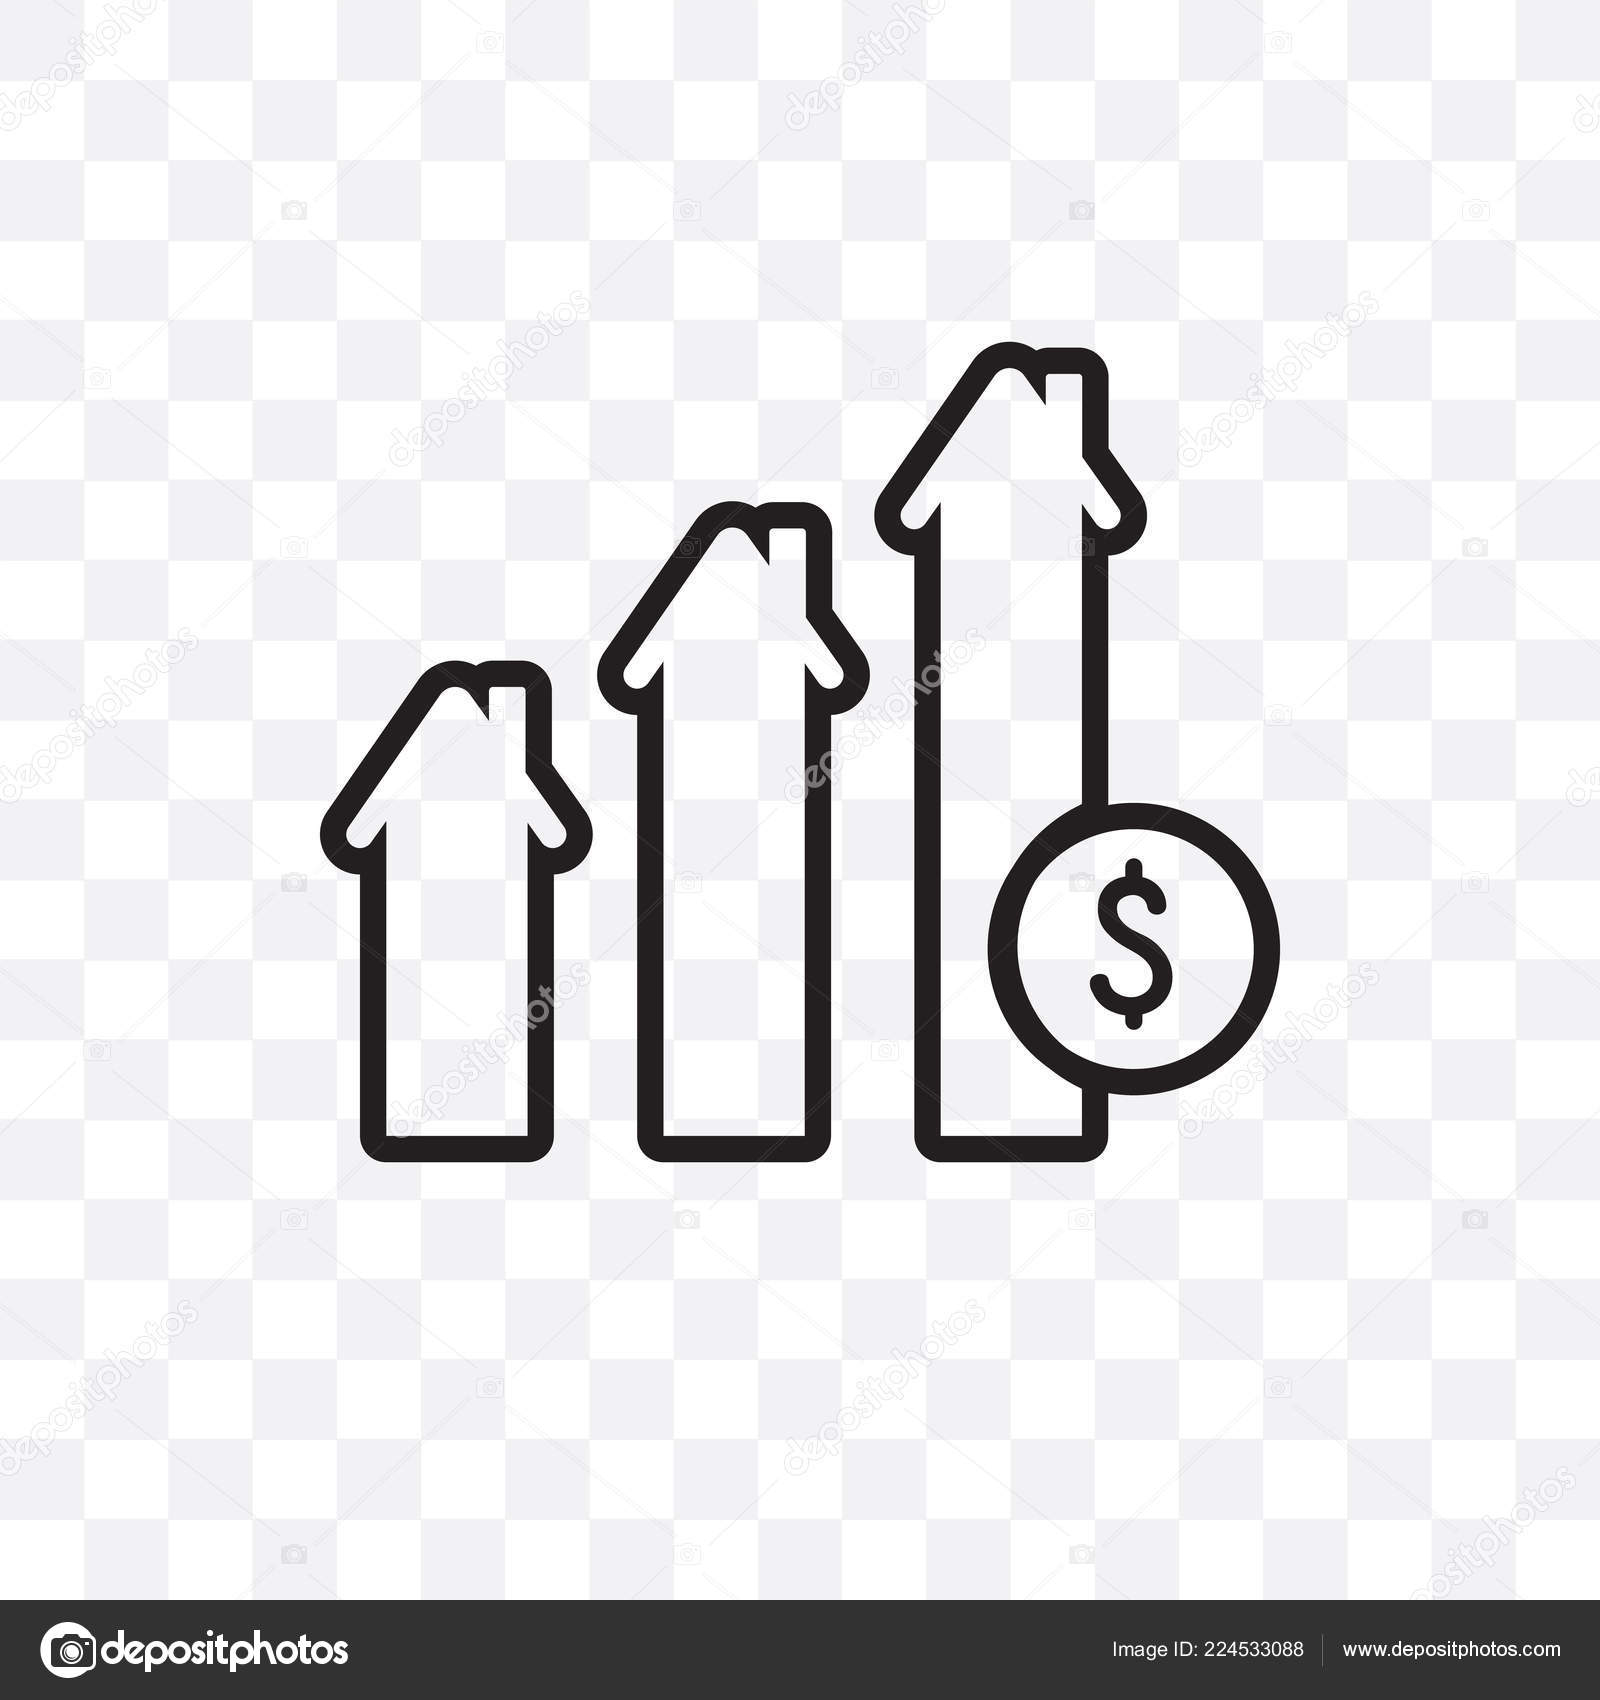 Mortgage Statistics Vector Linear Icon Isolated Transparent